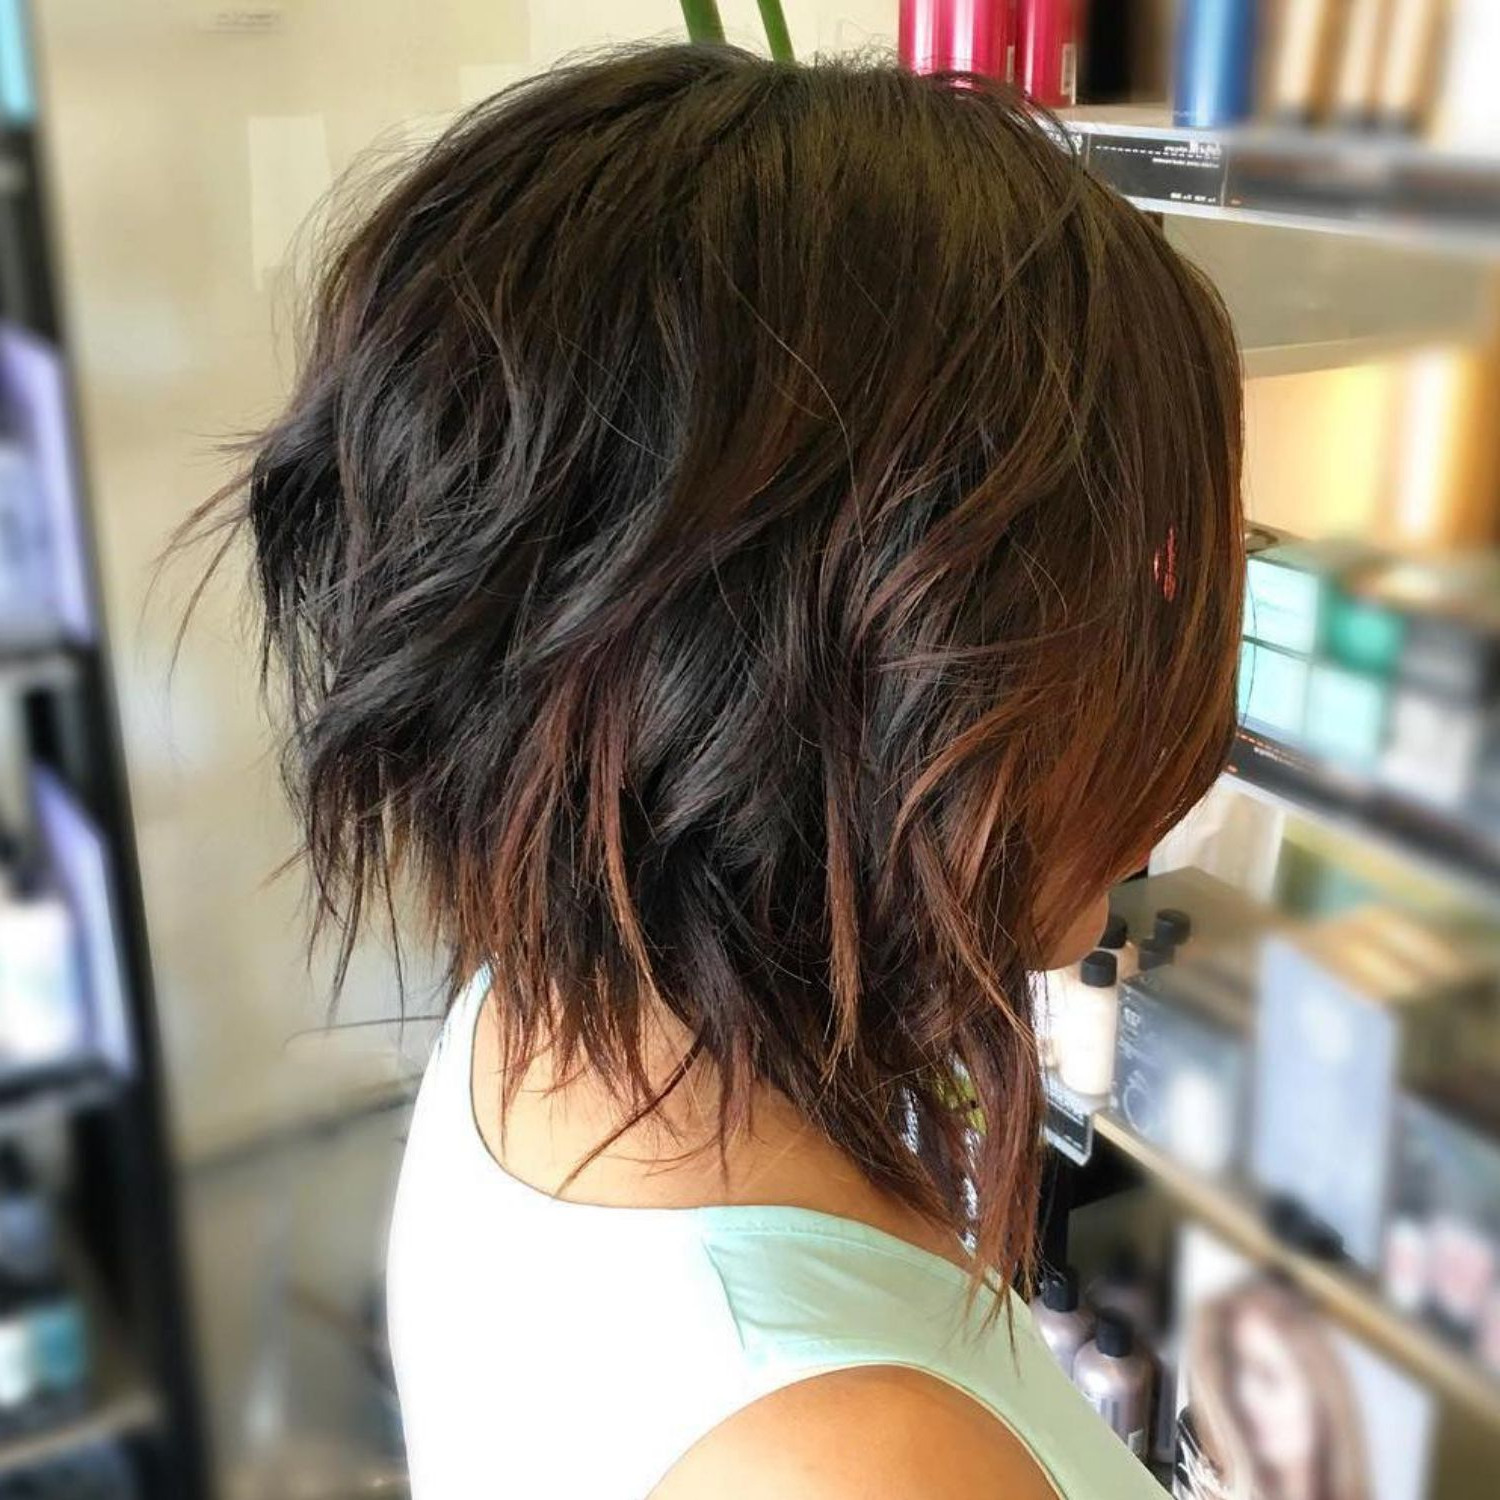 60 Messy Bob Hairstyles For Your Trendy Casual Looks | Messy Inside Balayaged Choppy Bob Haircuts (View 8 of 20)